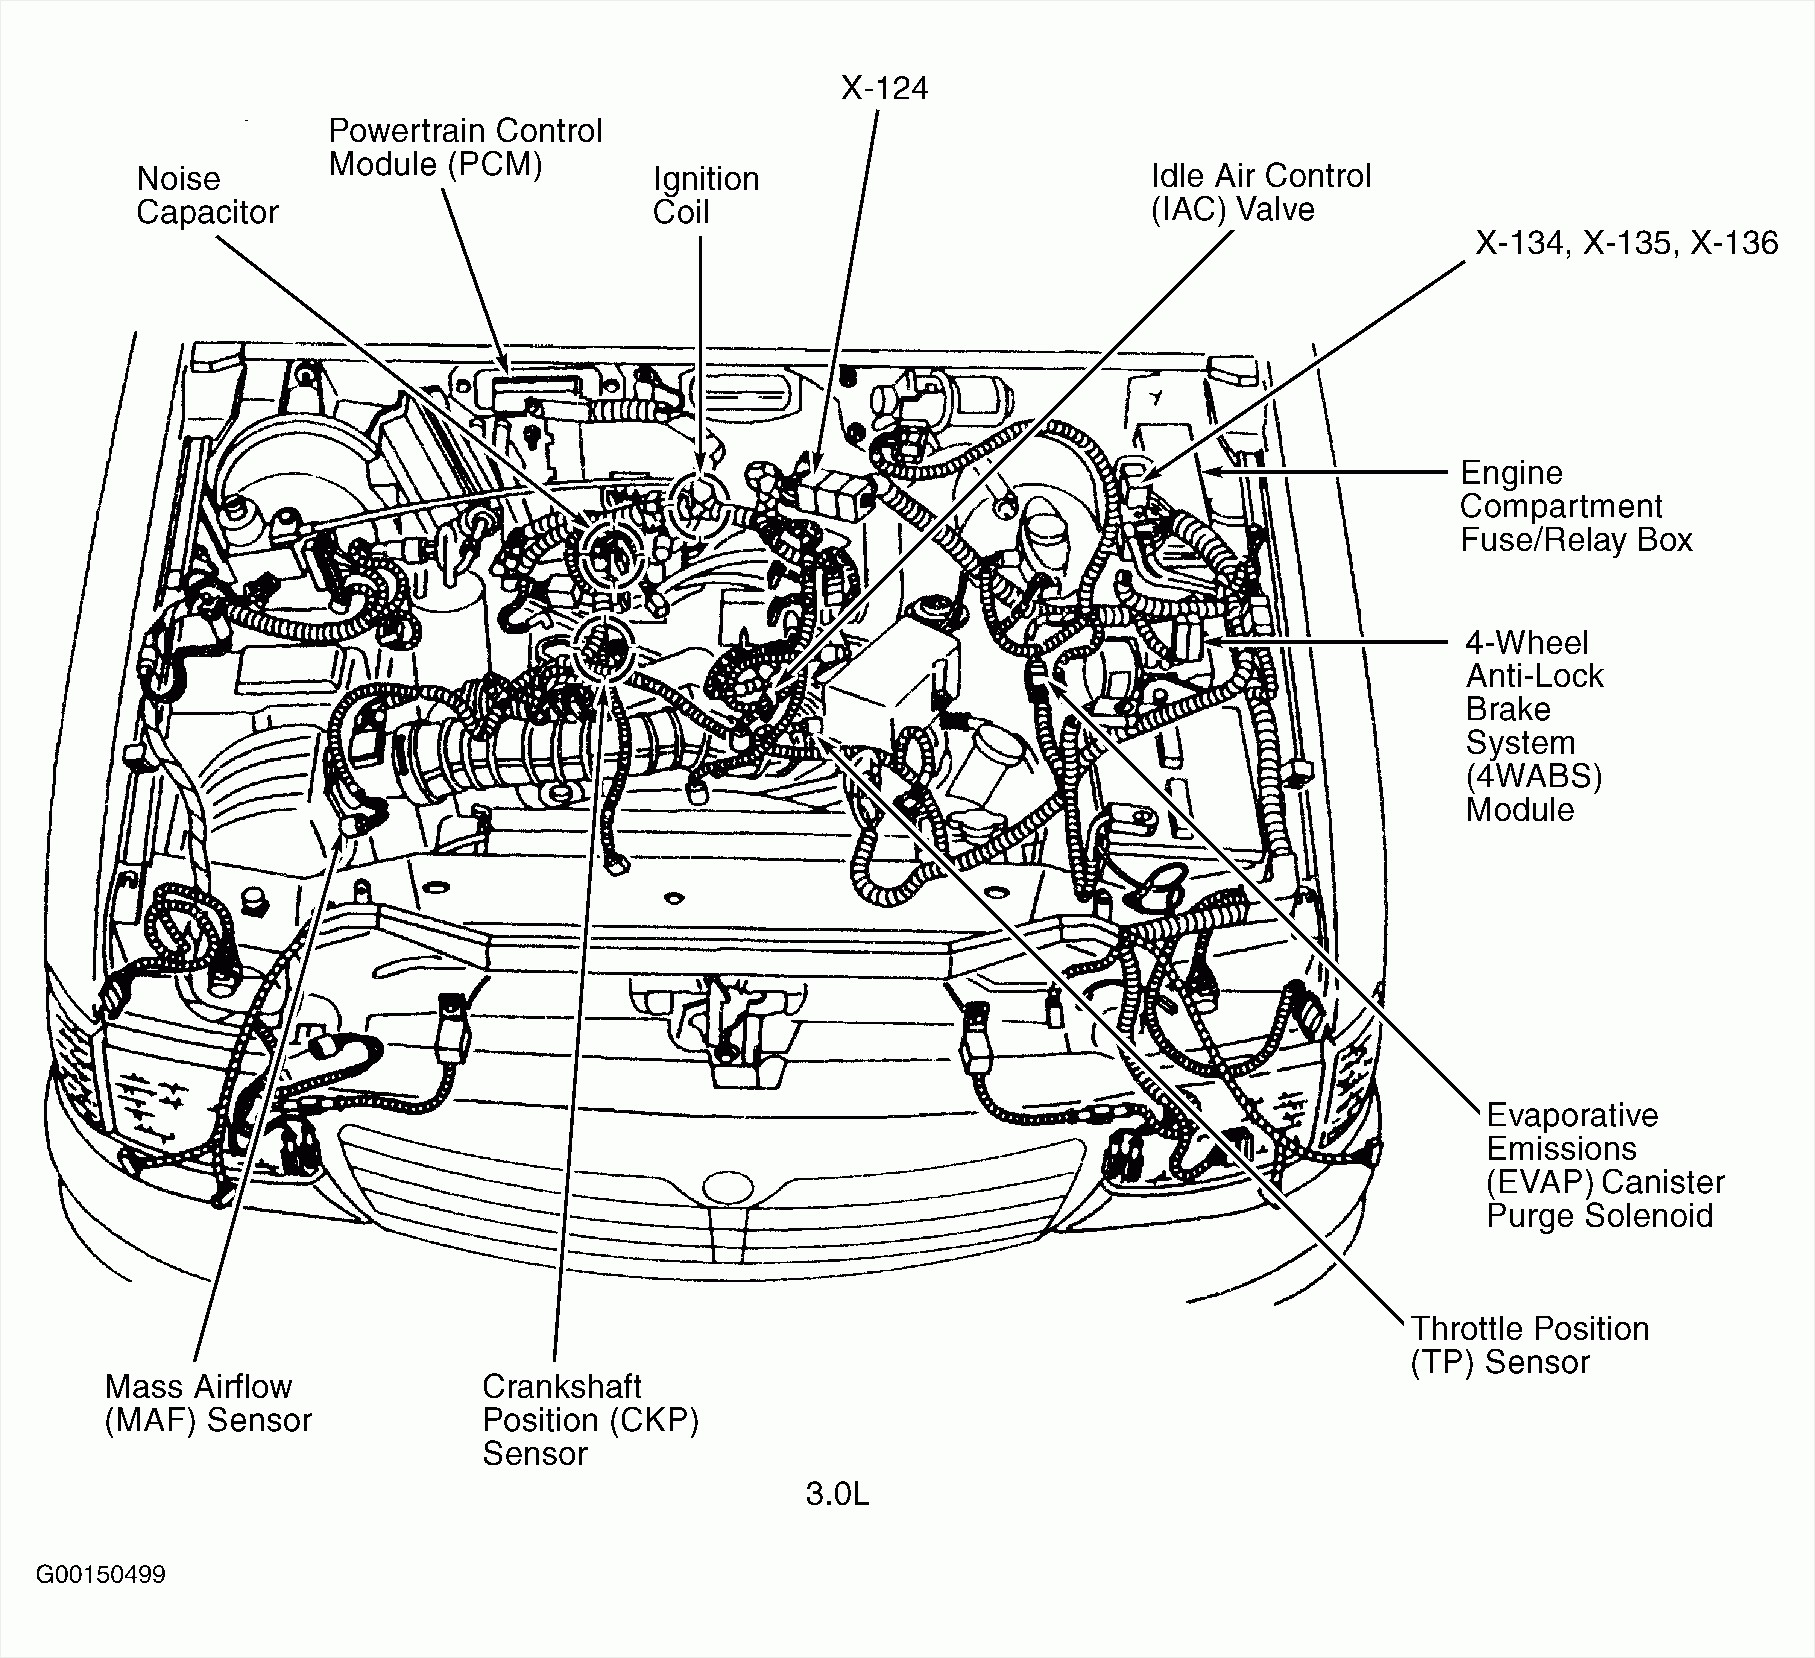 hight resolution of 2004 jeep wrangler engine diagram 2004 mazda 6 v6 engine diagram wiring diagrams of 2004 jeep